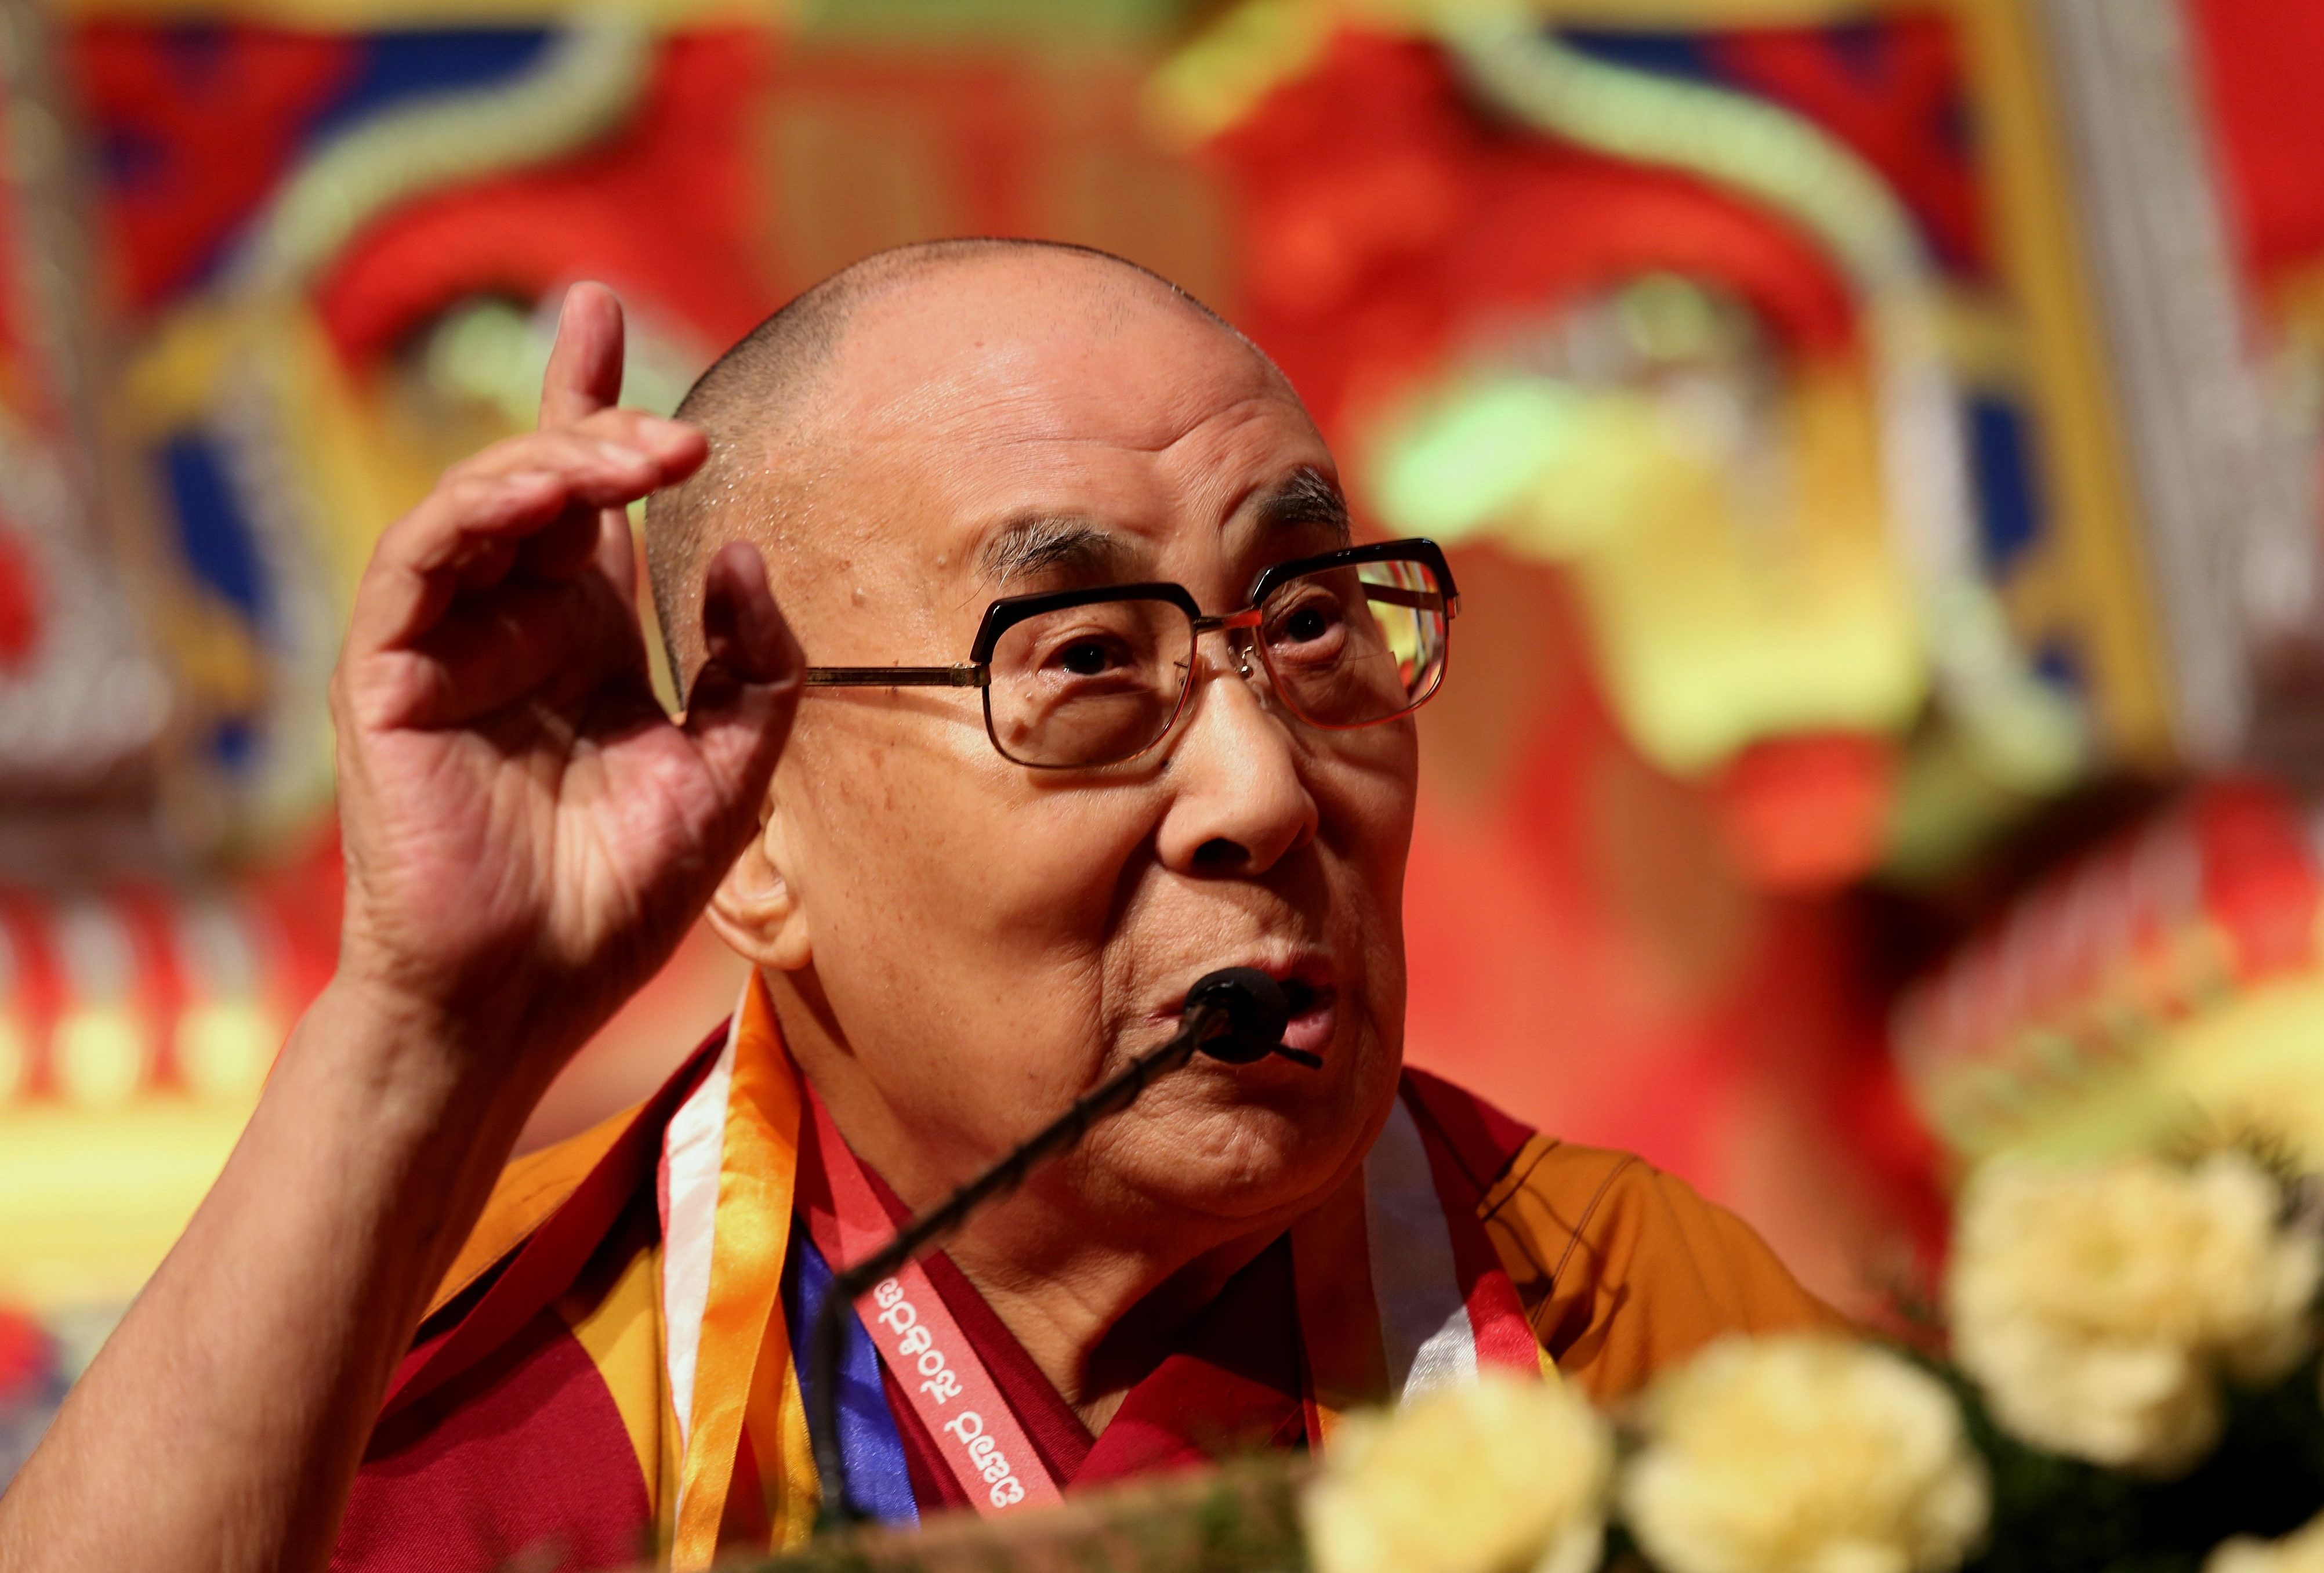 The Dalai Lama is a persona non-grata as far as Beijing is concerned.